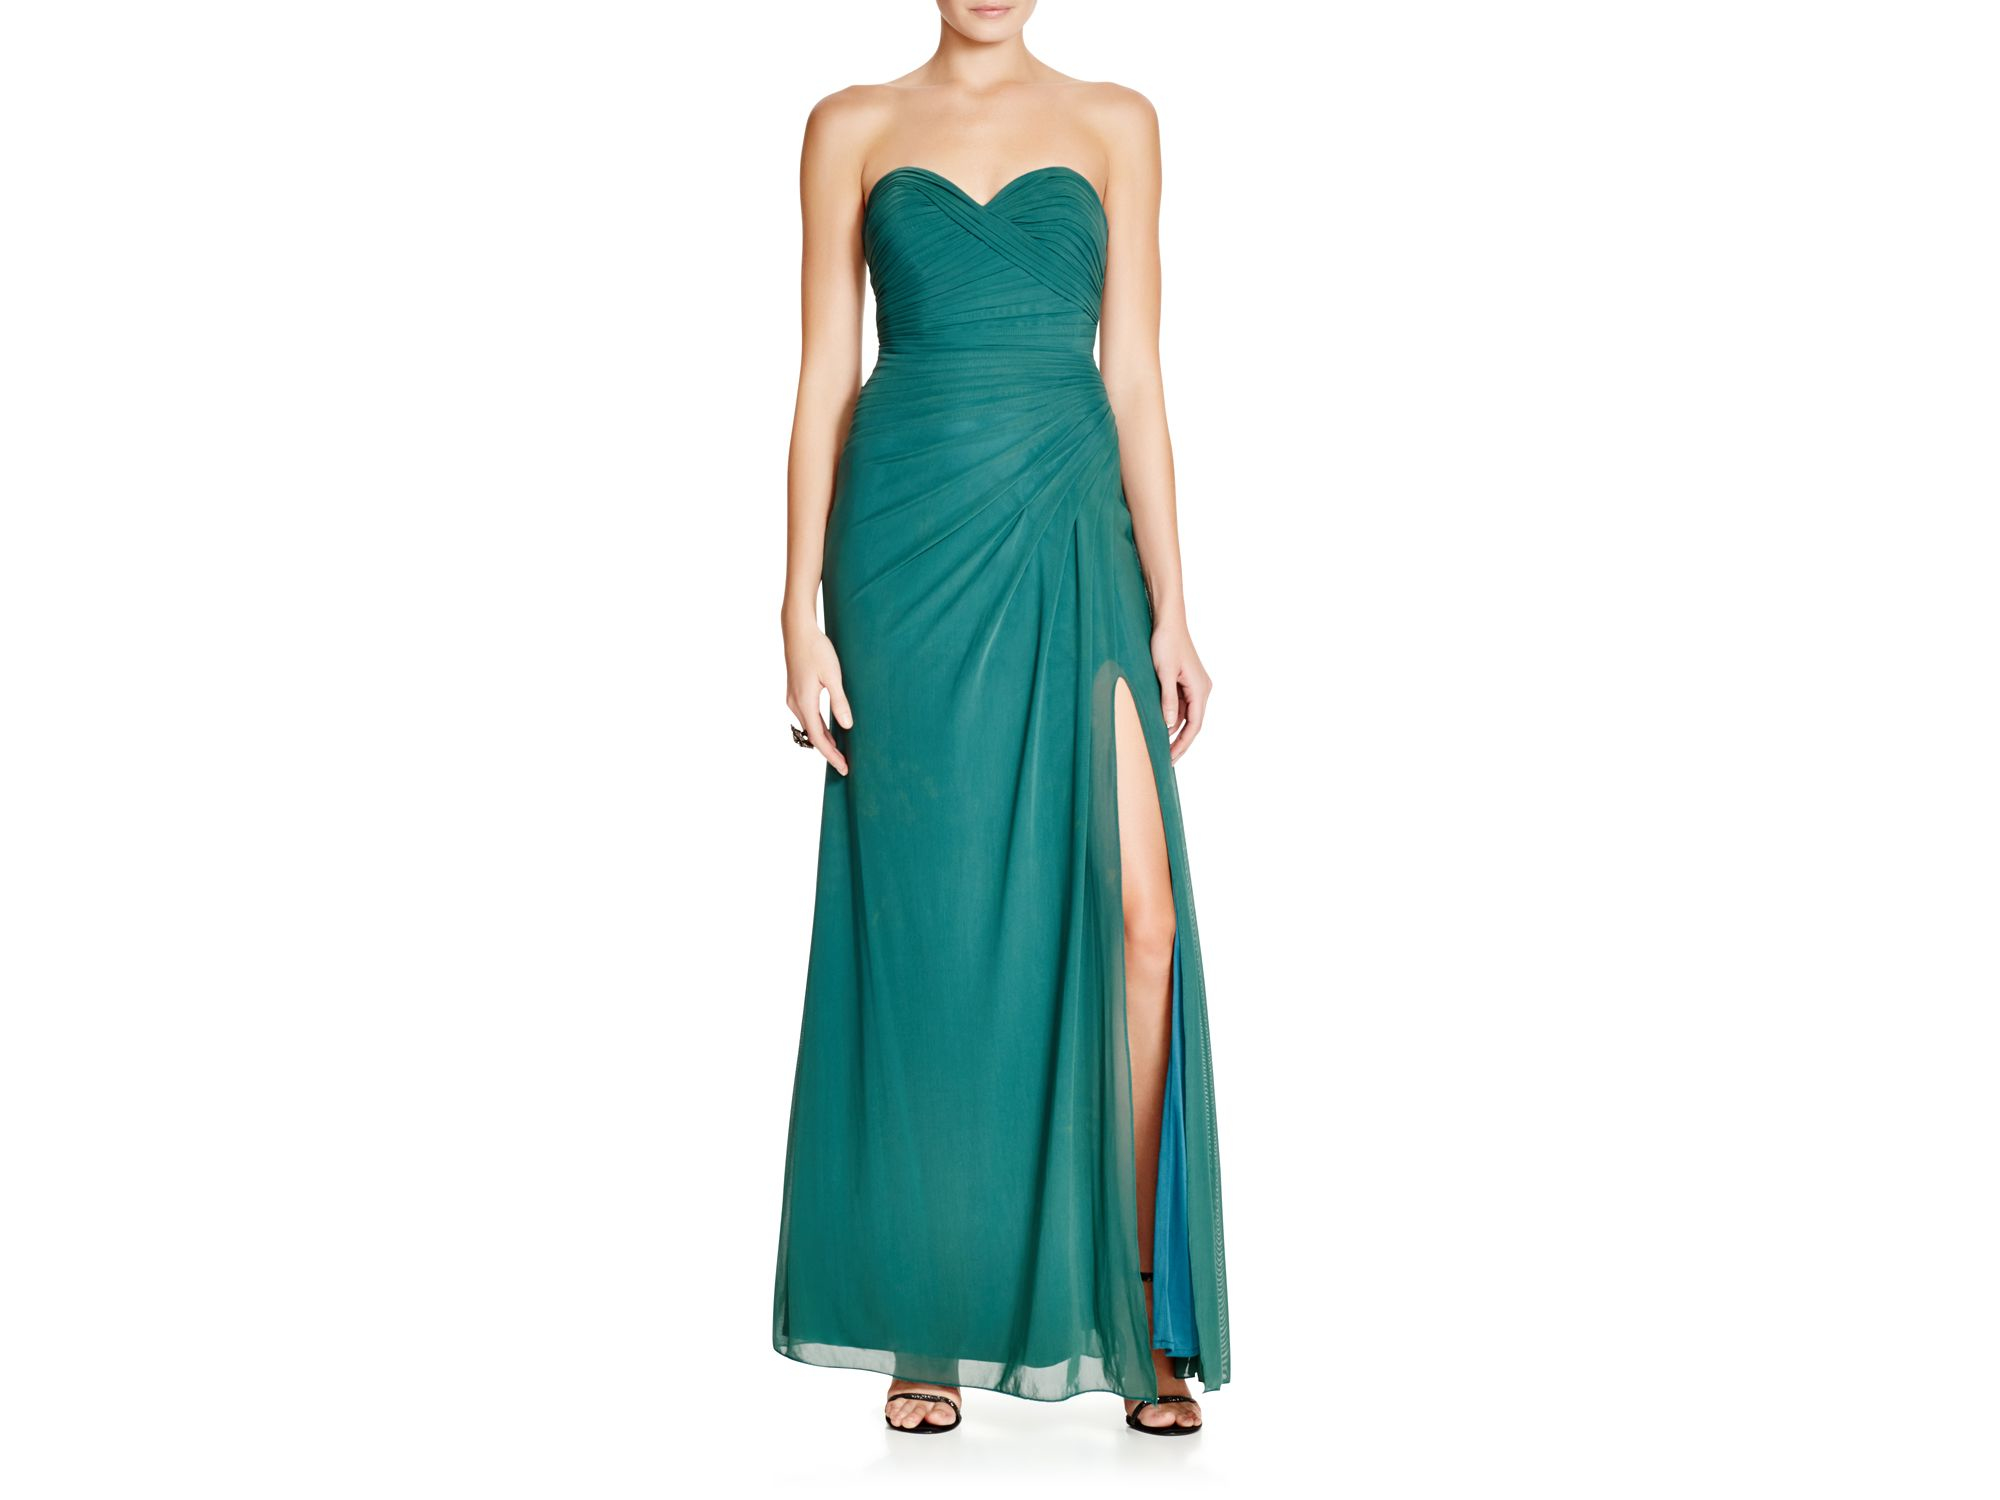 Lyst - La Femme Draped Strapless Gown in Green